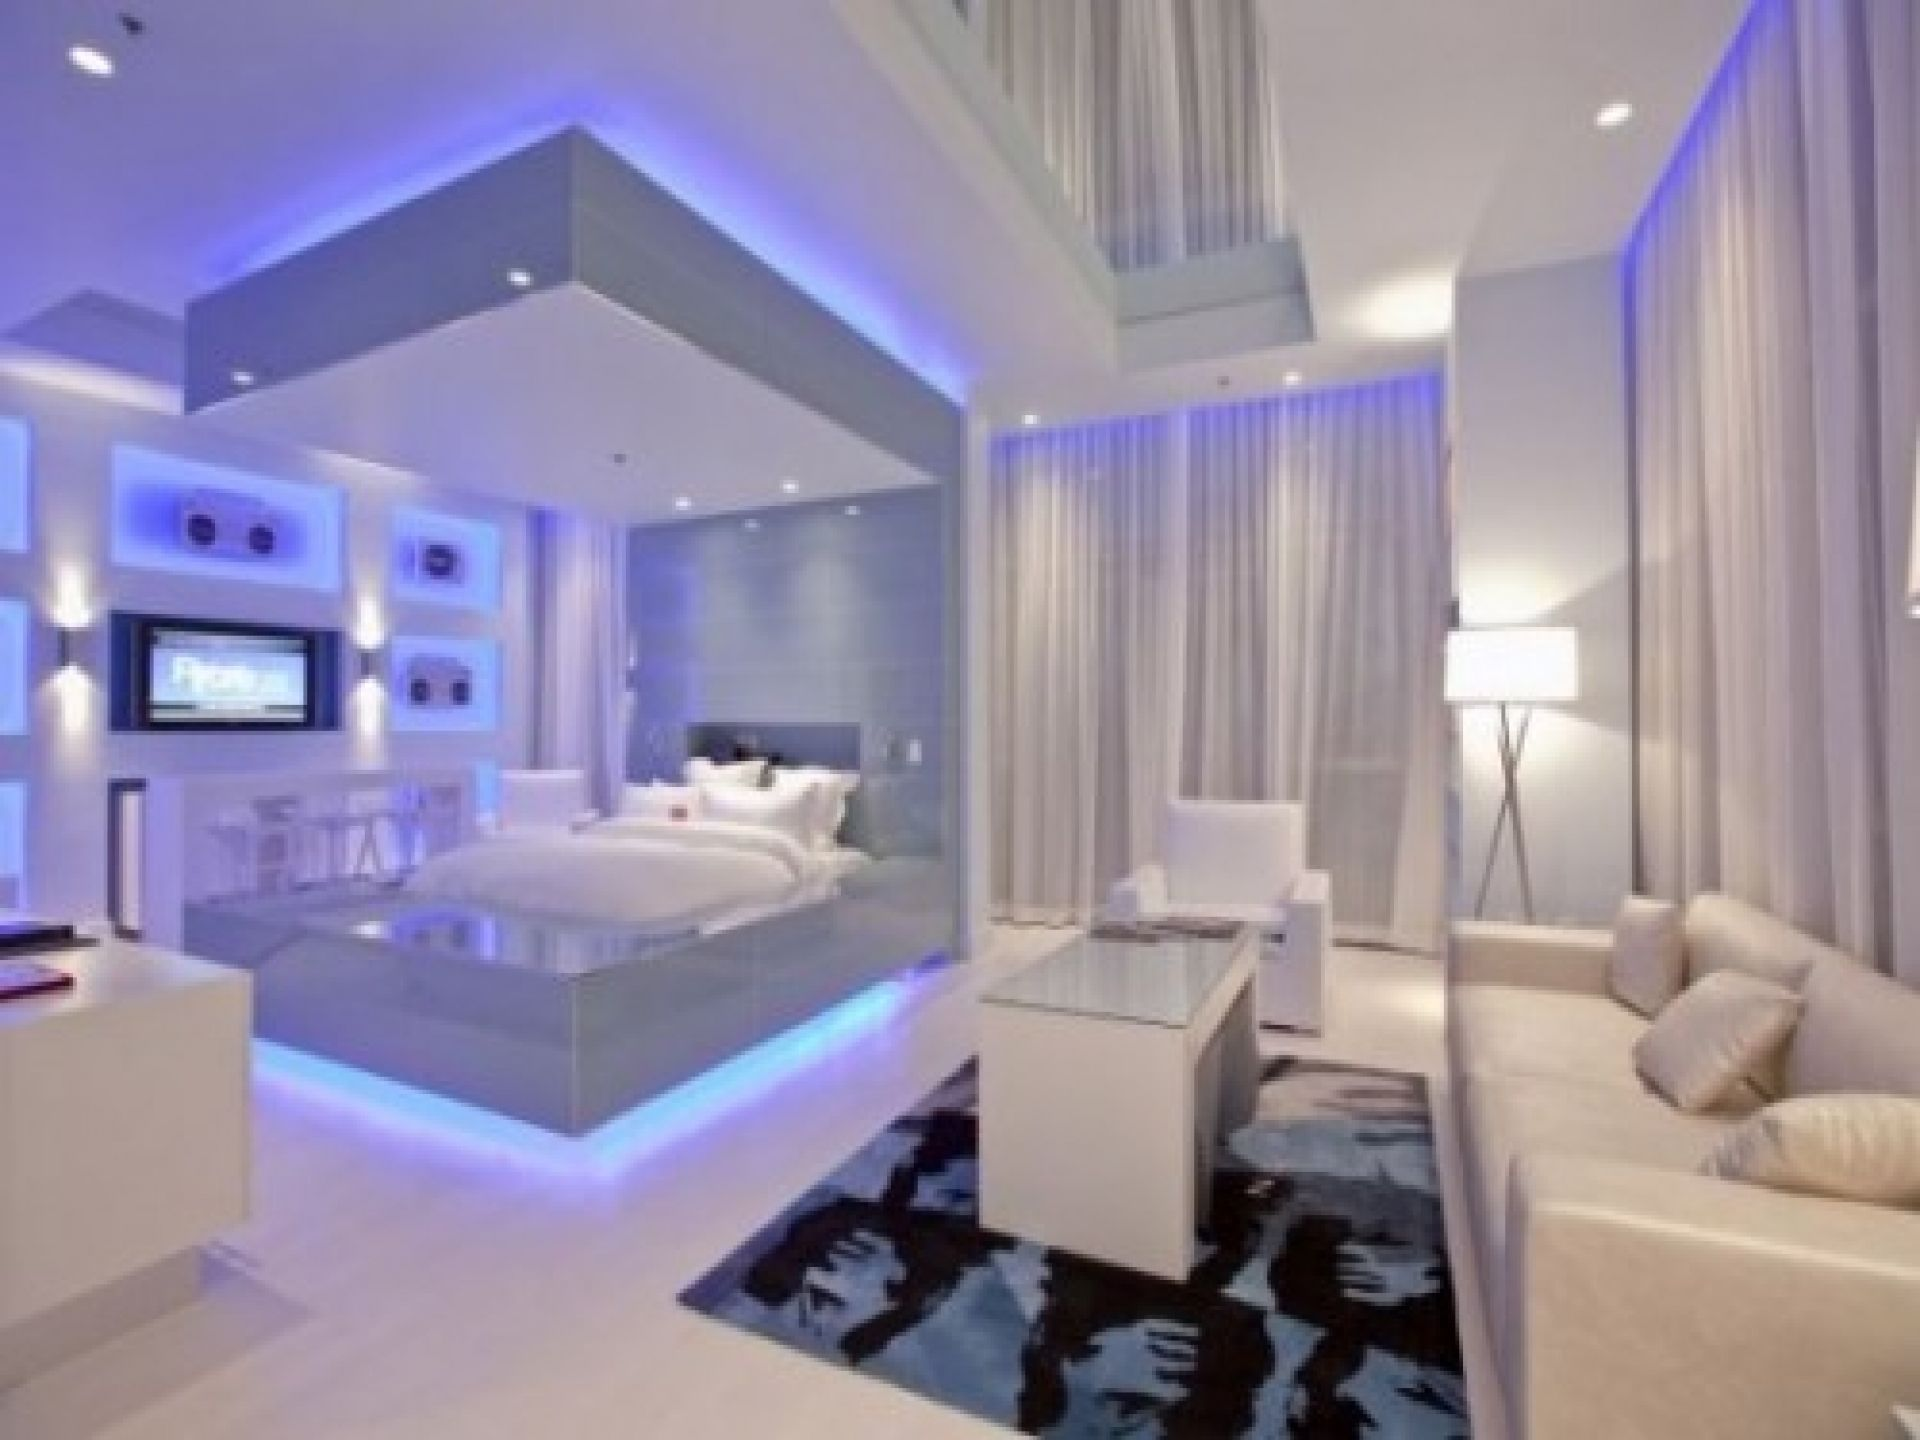 Smart And Nice Decorating Bedroom Ideas For Women Luxury Bedroom Ideas For Women With Modern Platform Luxurious Bedrooms Under Bed Lighting Futuristic Bedroom